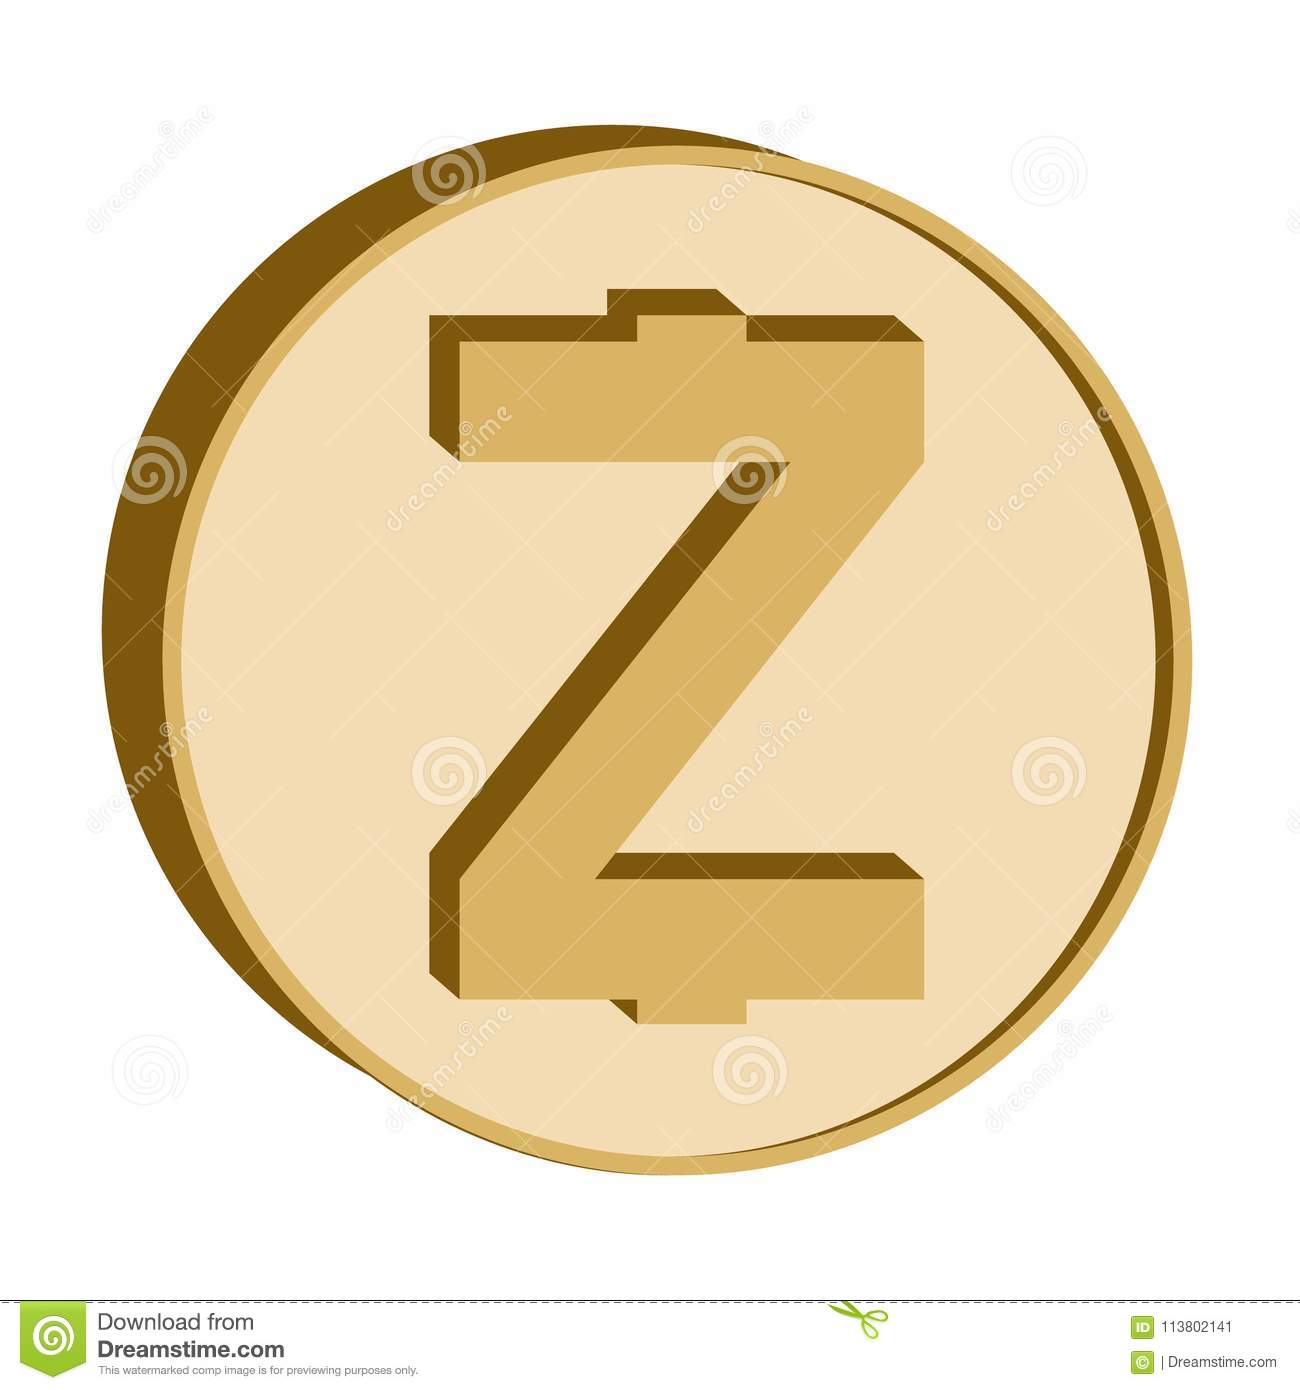 Zcash Crypto Currency Symbolgolden Coin Icon